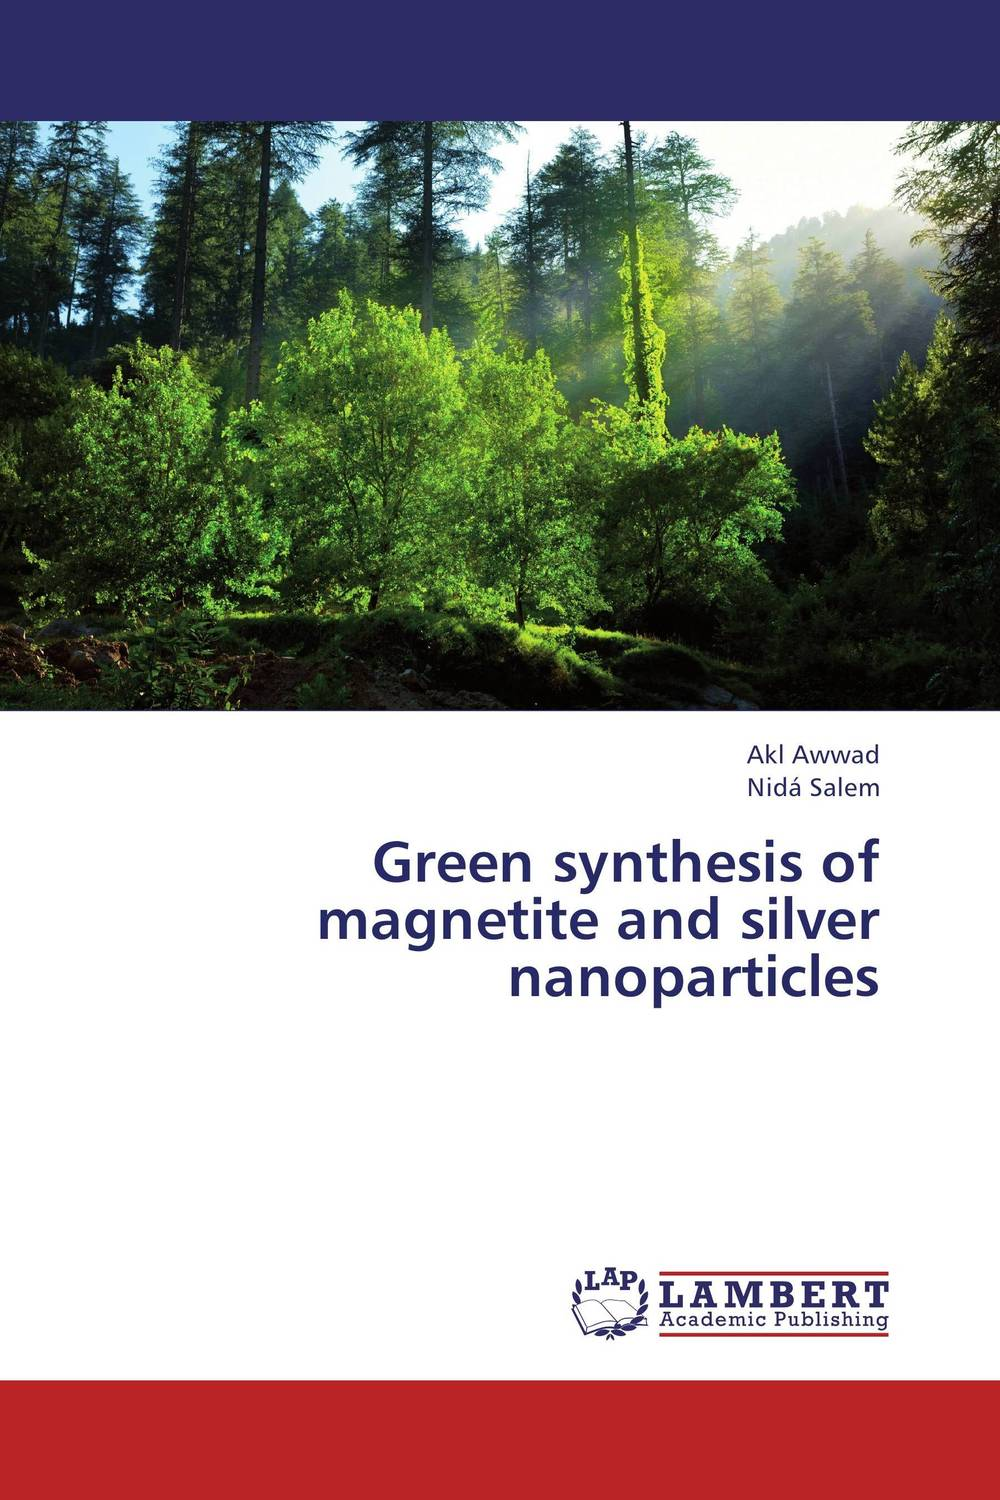 Green synthesis of magnetite and silver nanoparticles